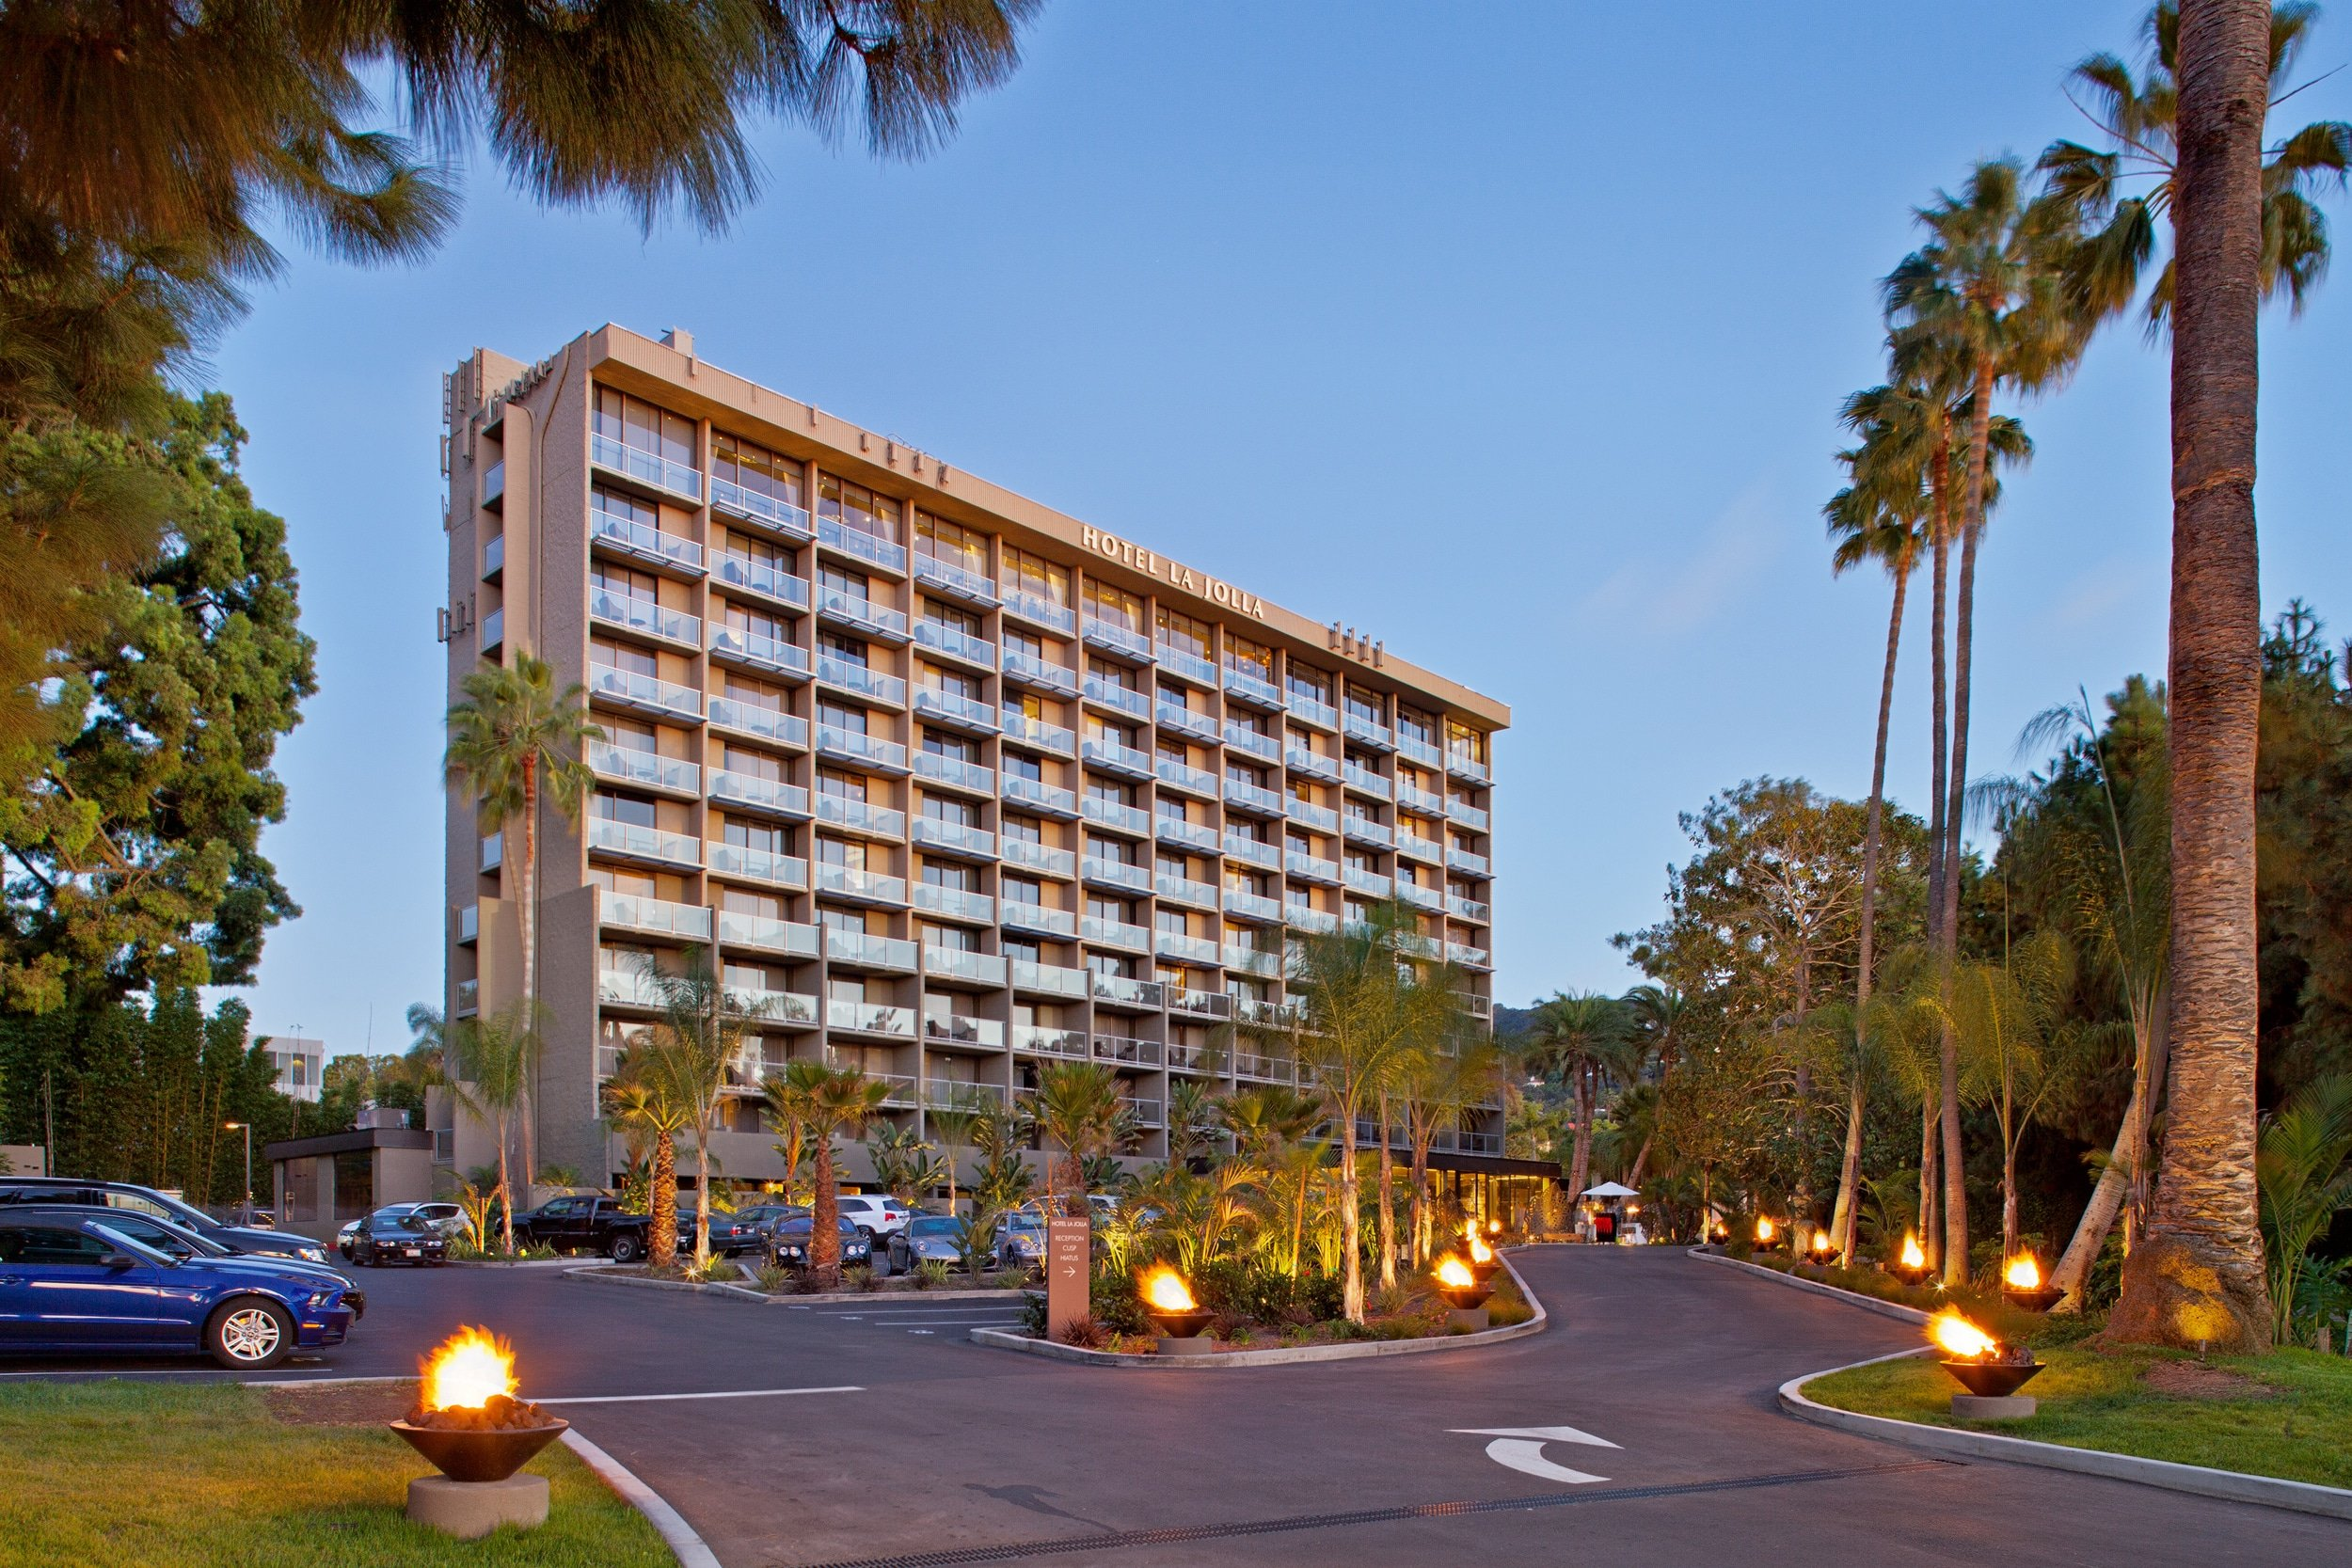 Hotels In La Jolla Shores Ca